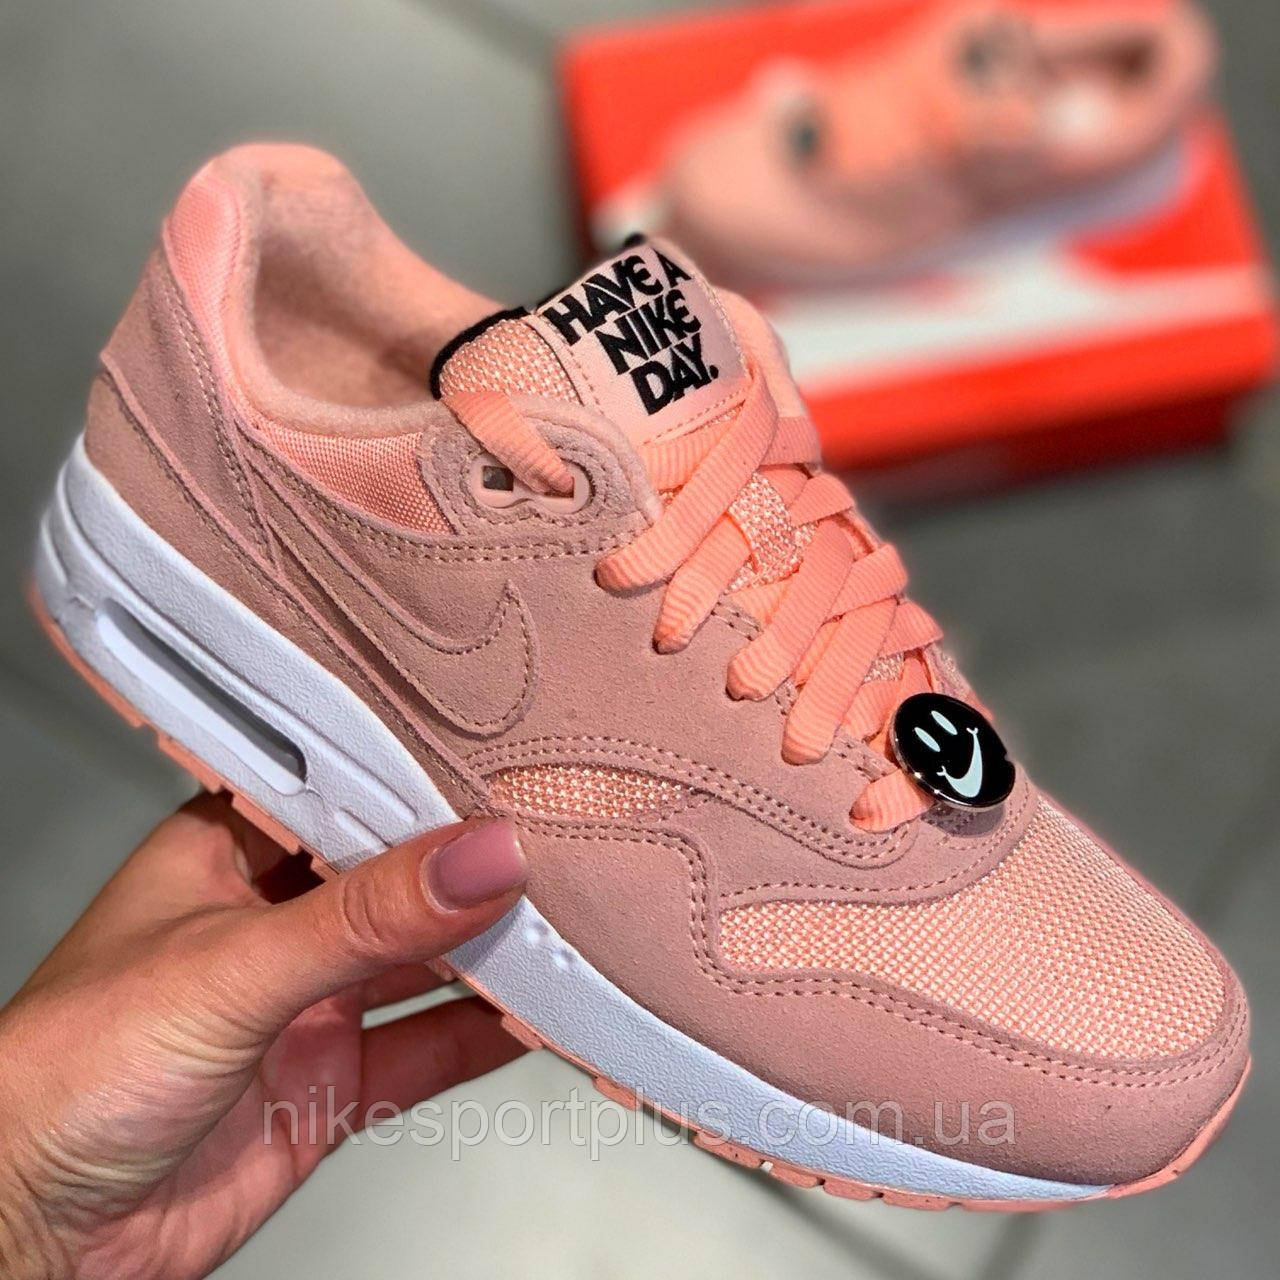 online retailer 90594 52658 КРОССОВКИ NIKE AIR MAX 1 NK DAY (GS) AT8131-600